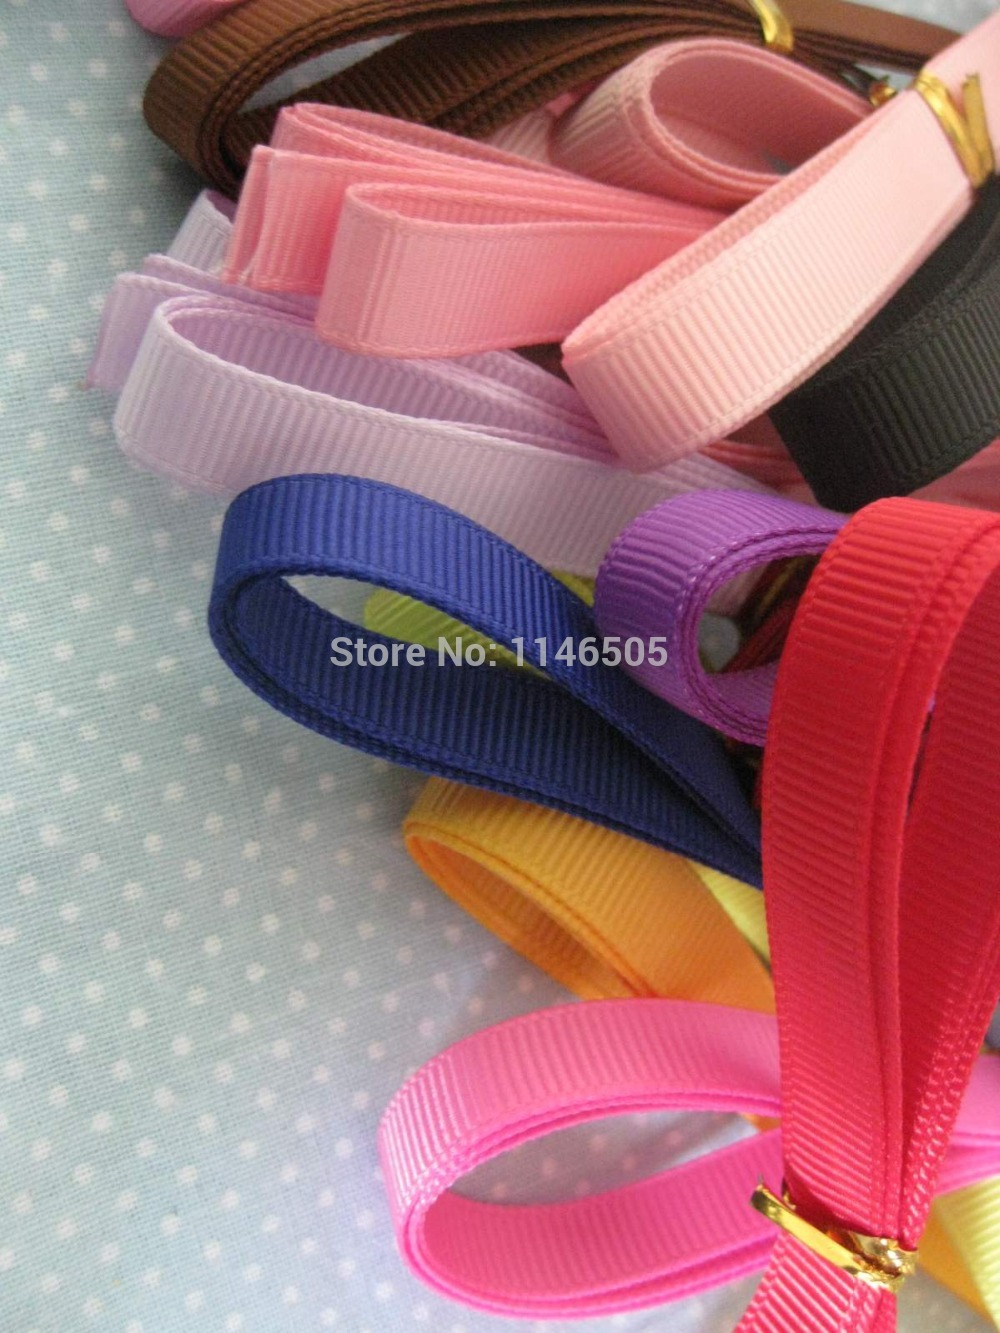 30pcs 3/8 Mix Colors Random Style Colorful Grosgrain Wedding Party Deco Craft Festive sa ...